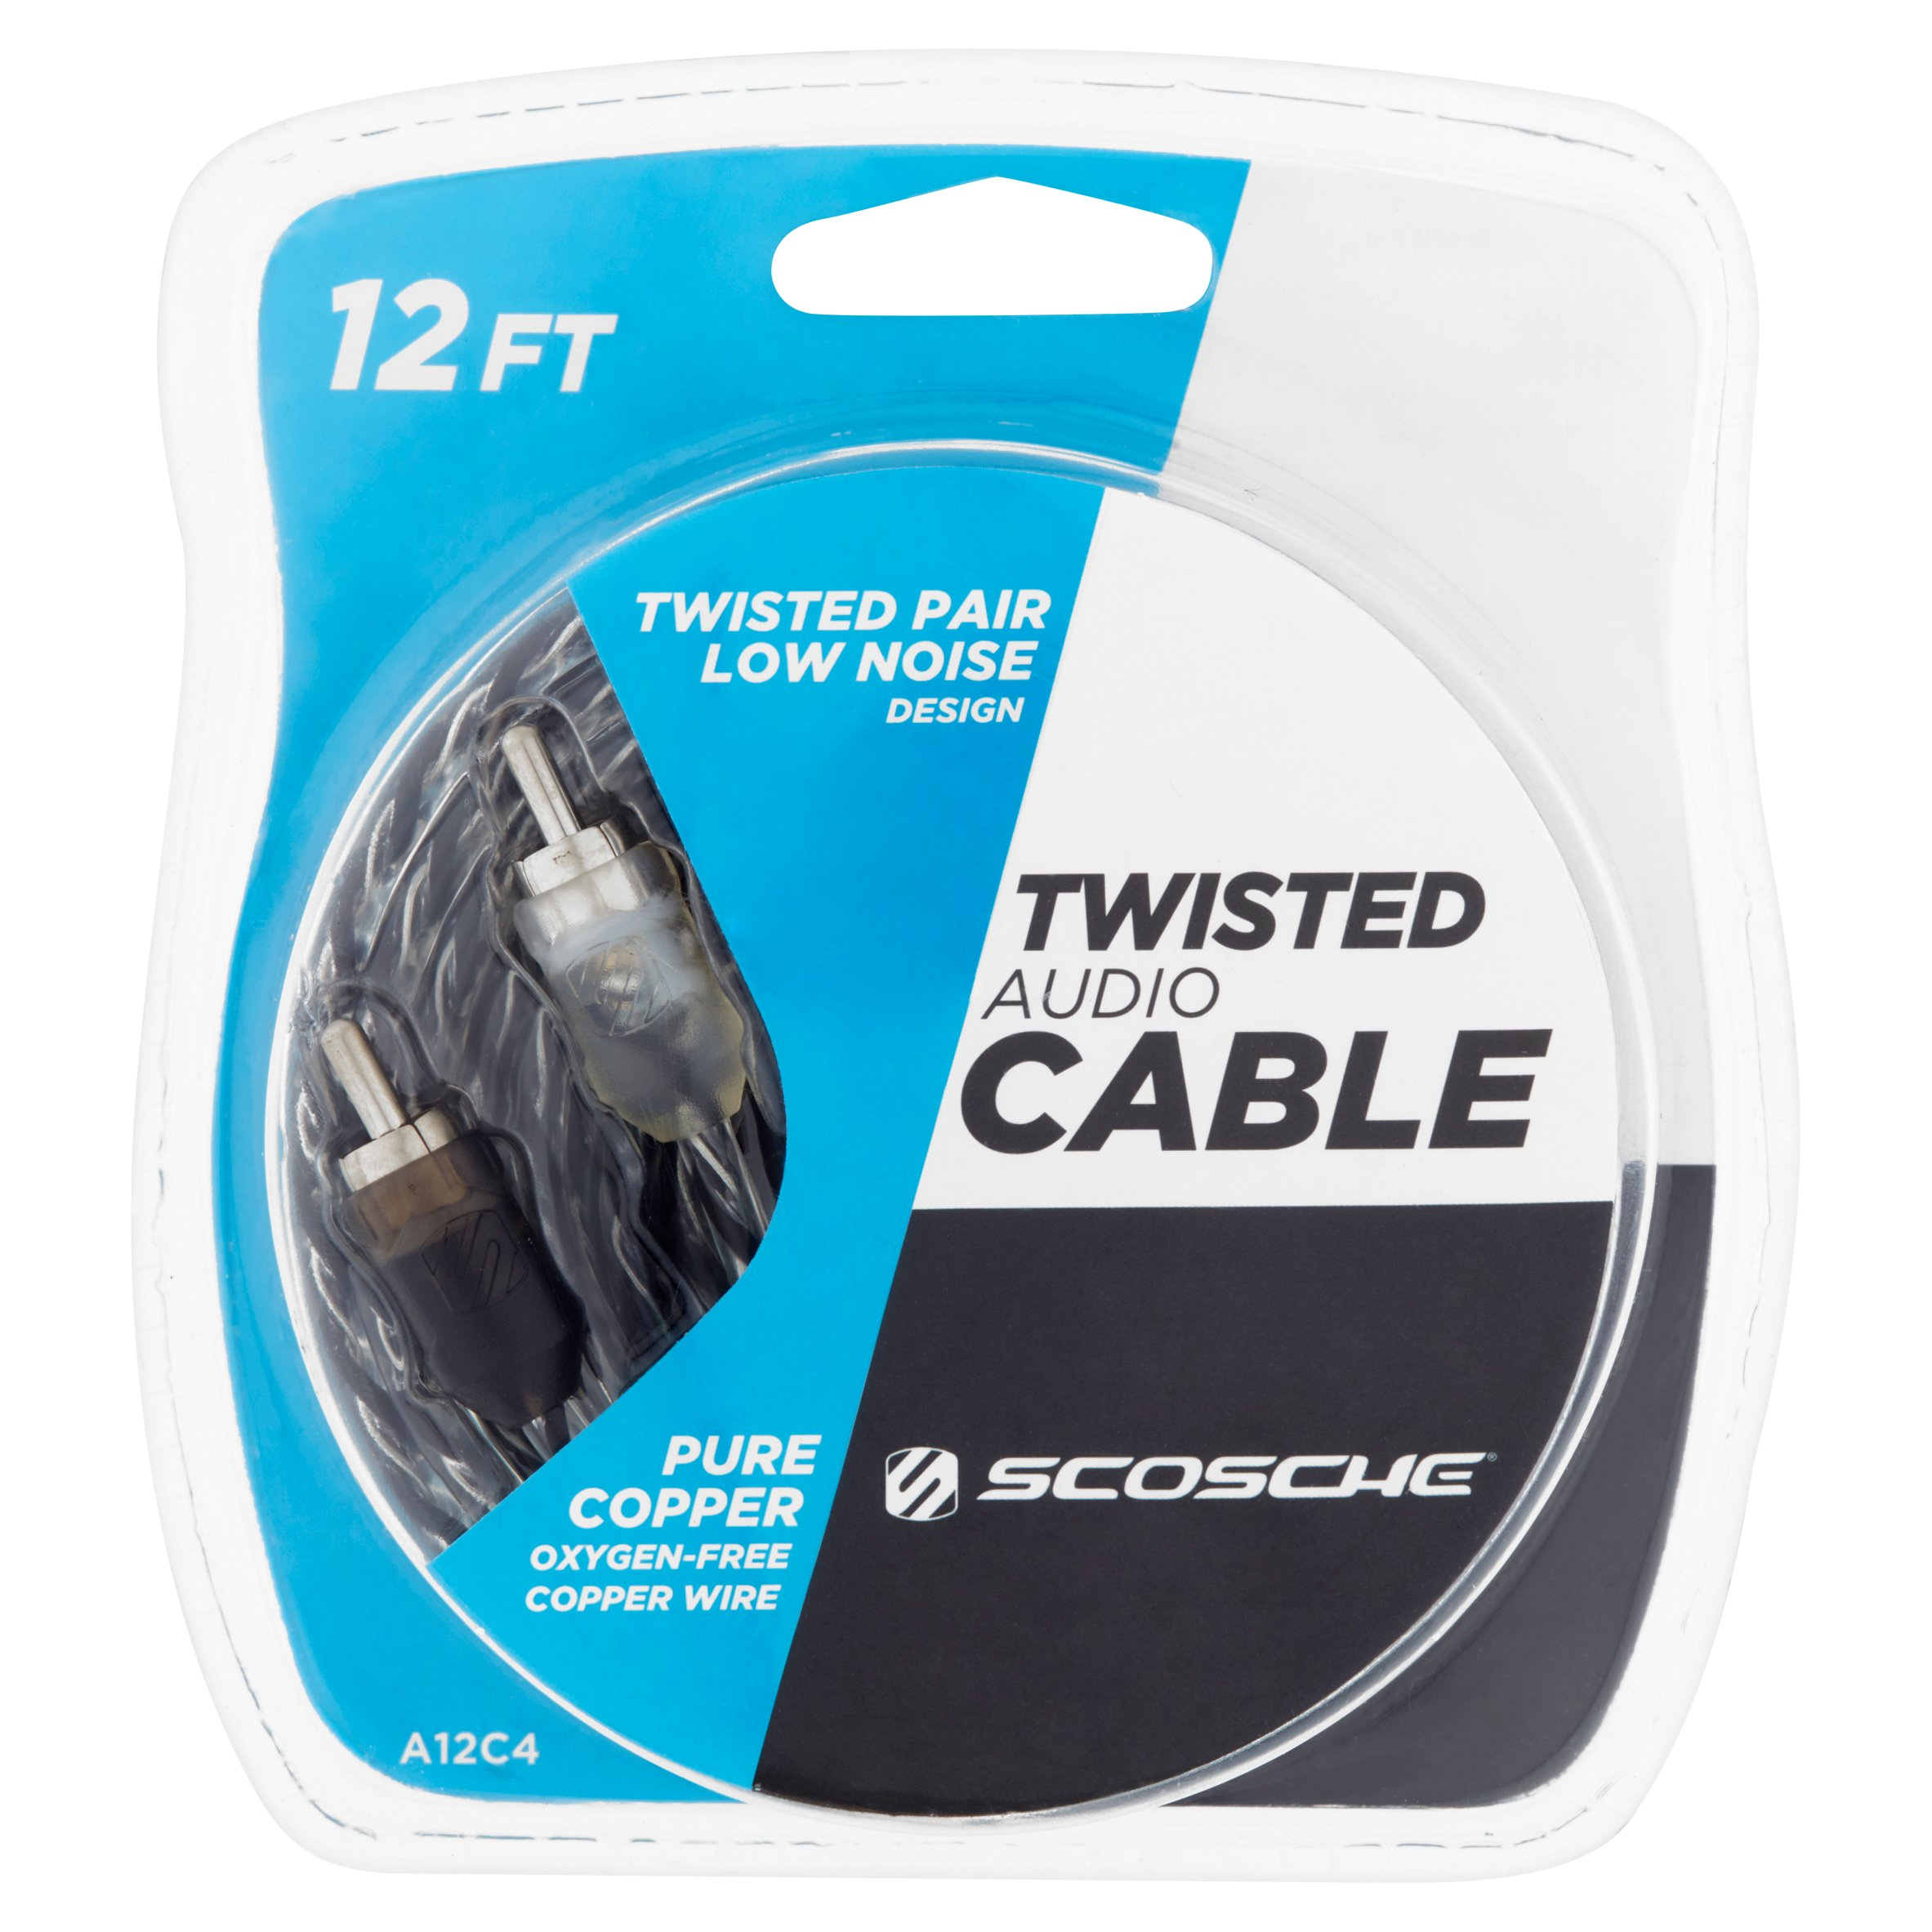 Scosche 12 ft Twisted Audio Cable